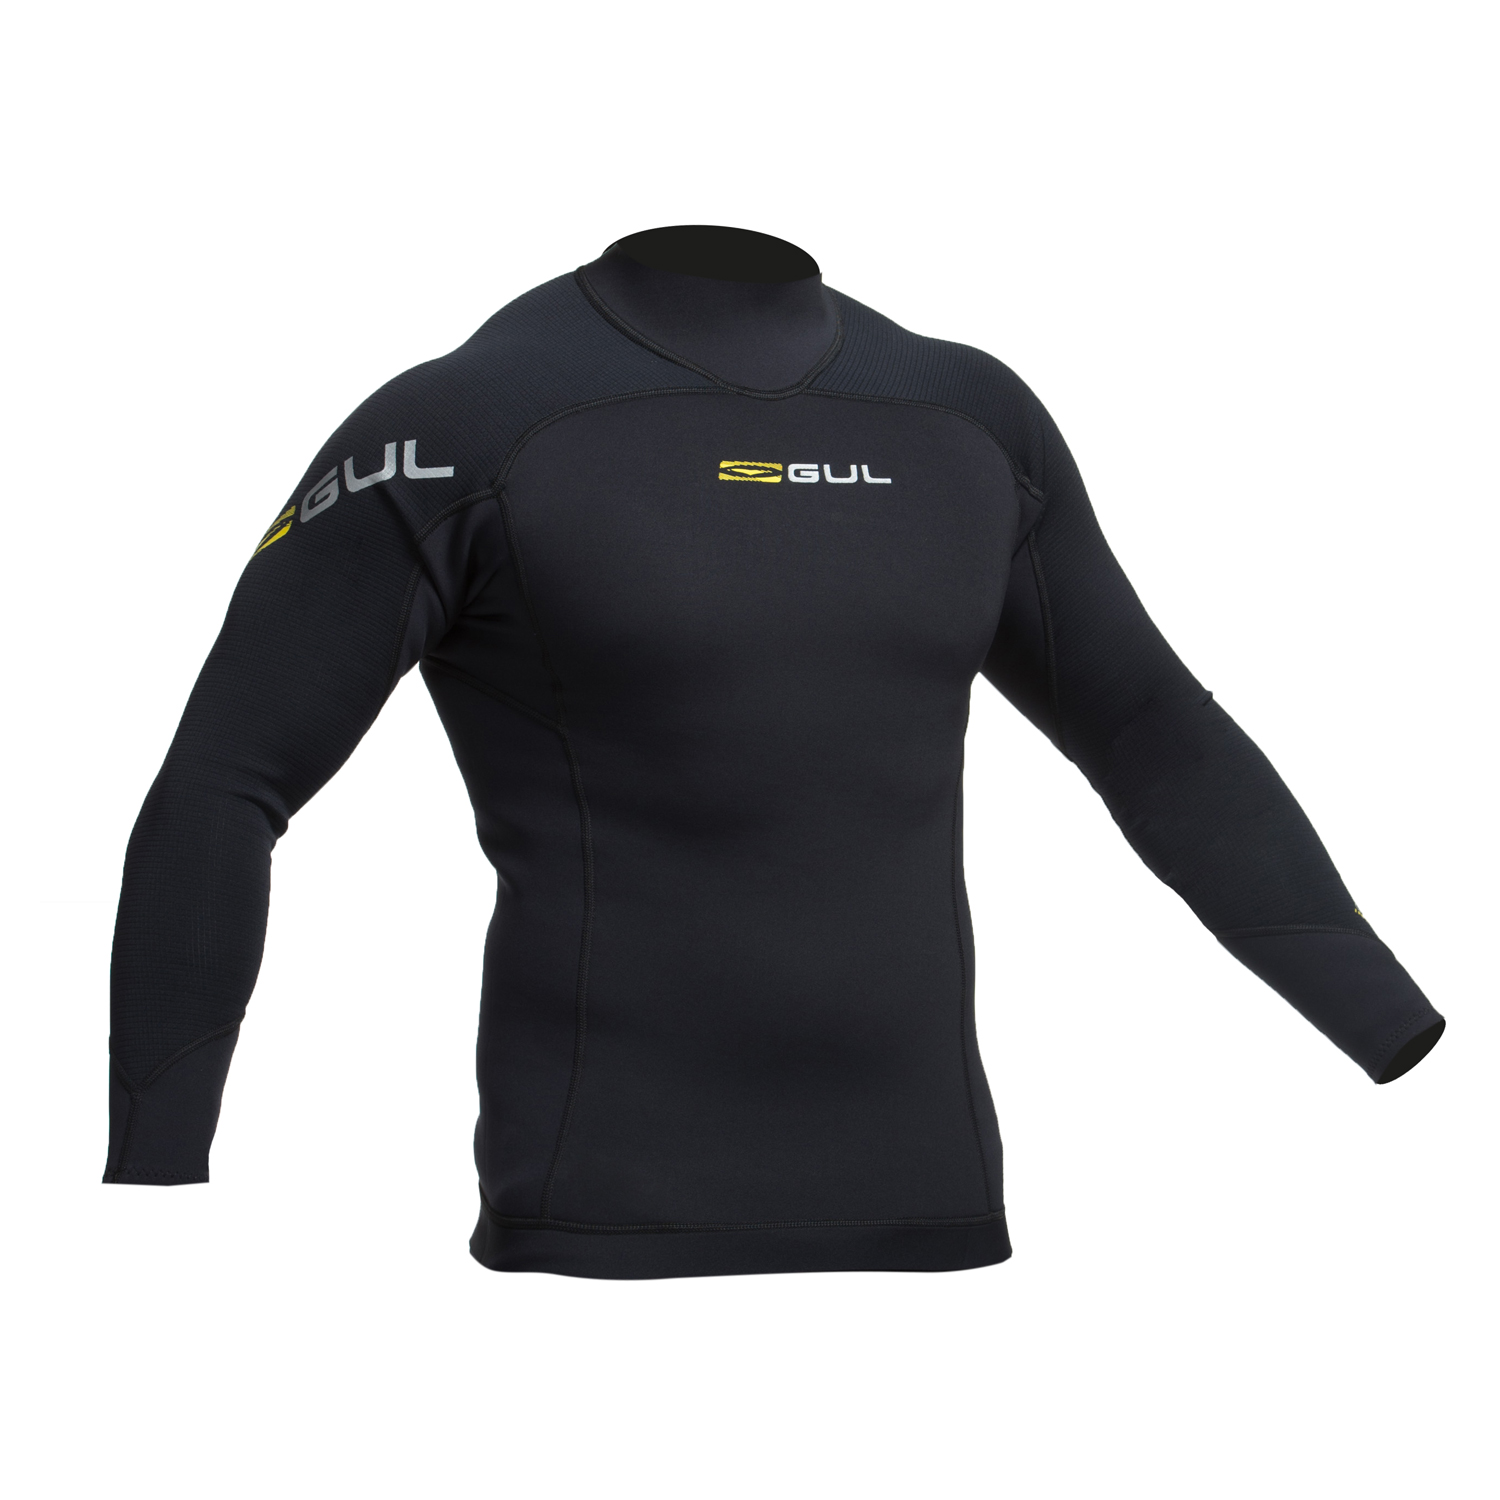 d2ce321088 Gul Code Zero 3mm Thermo Wetsuit Top 2019 - Black